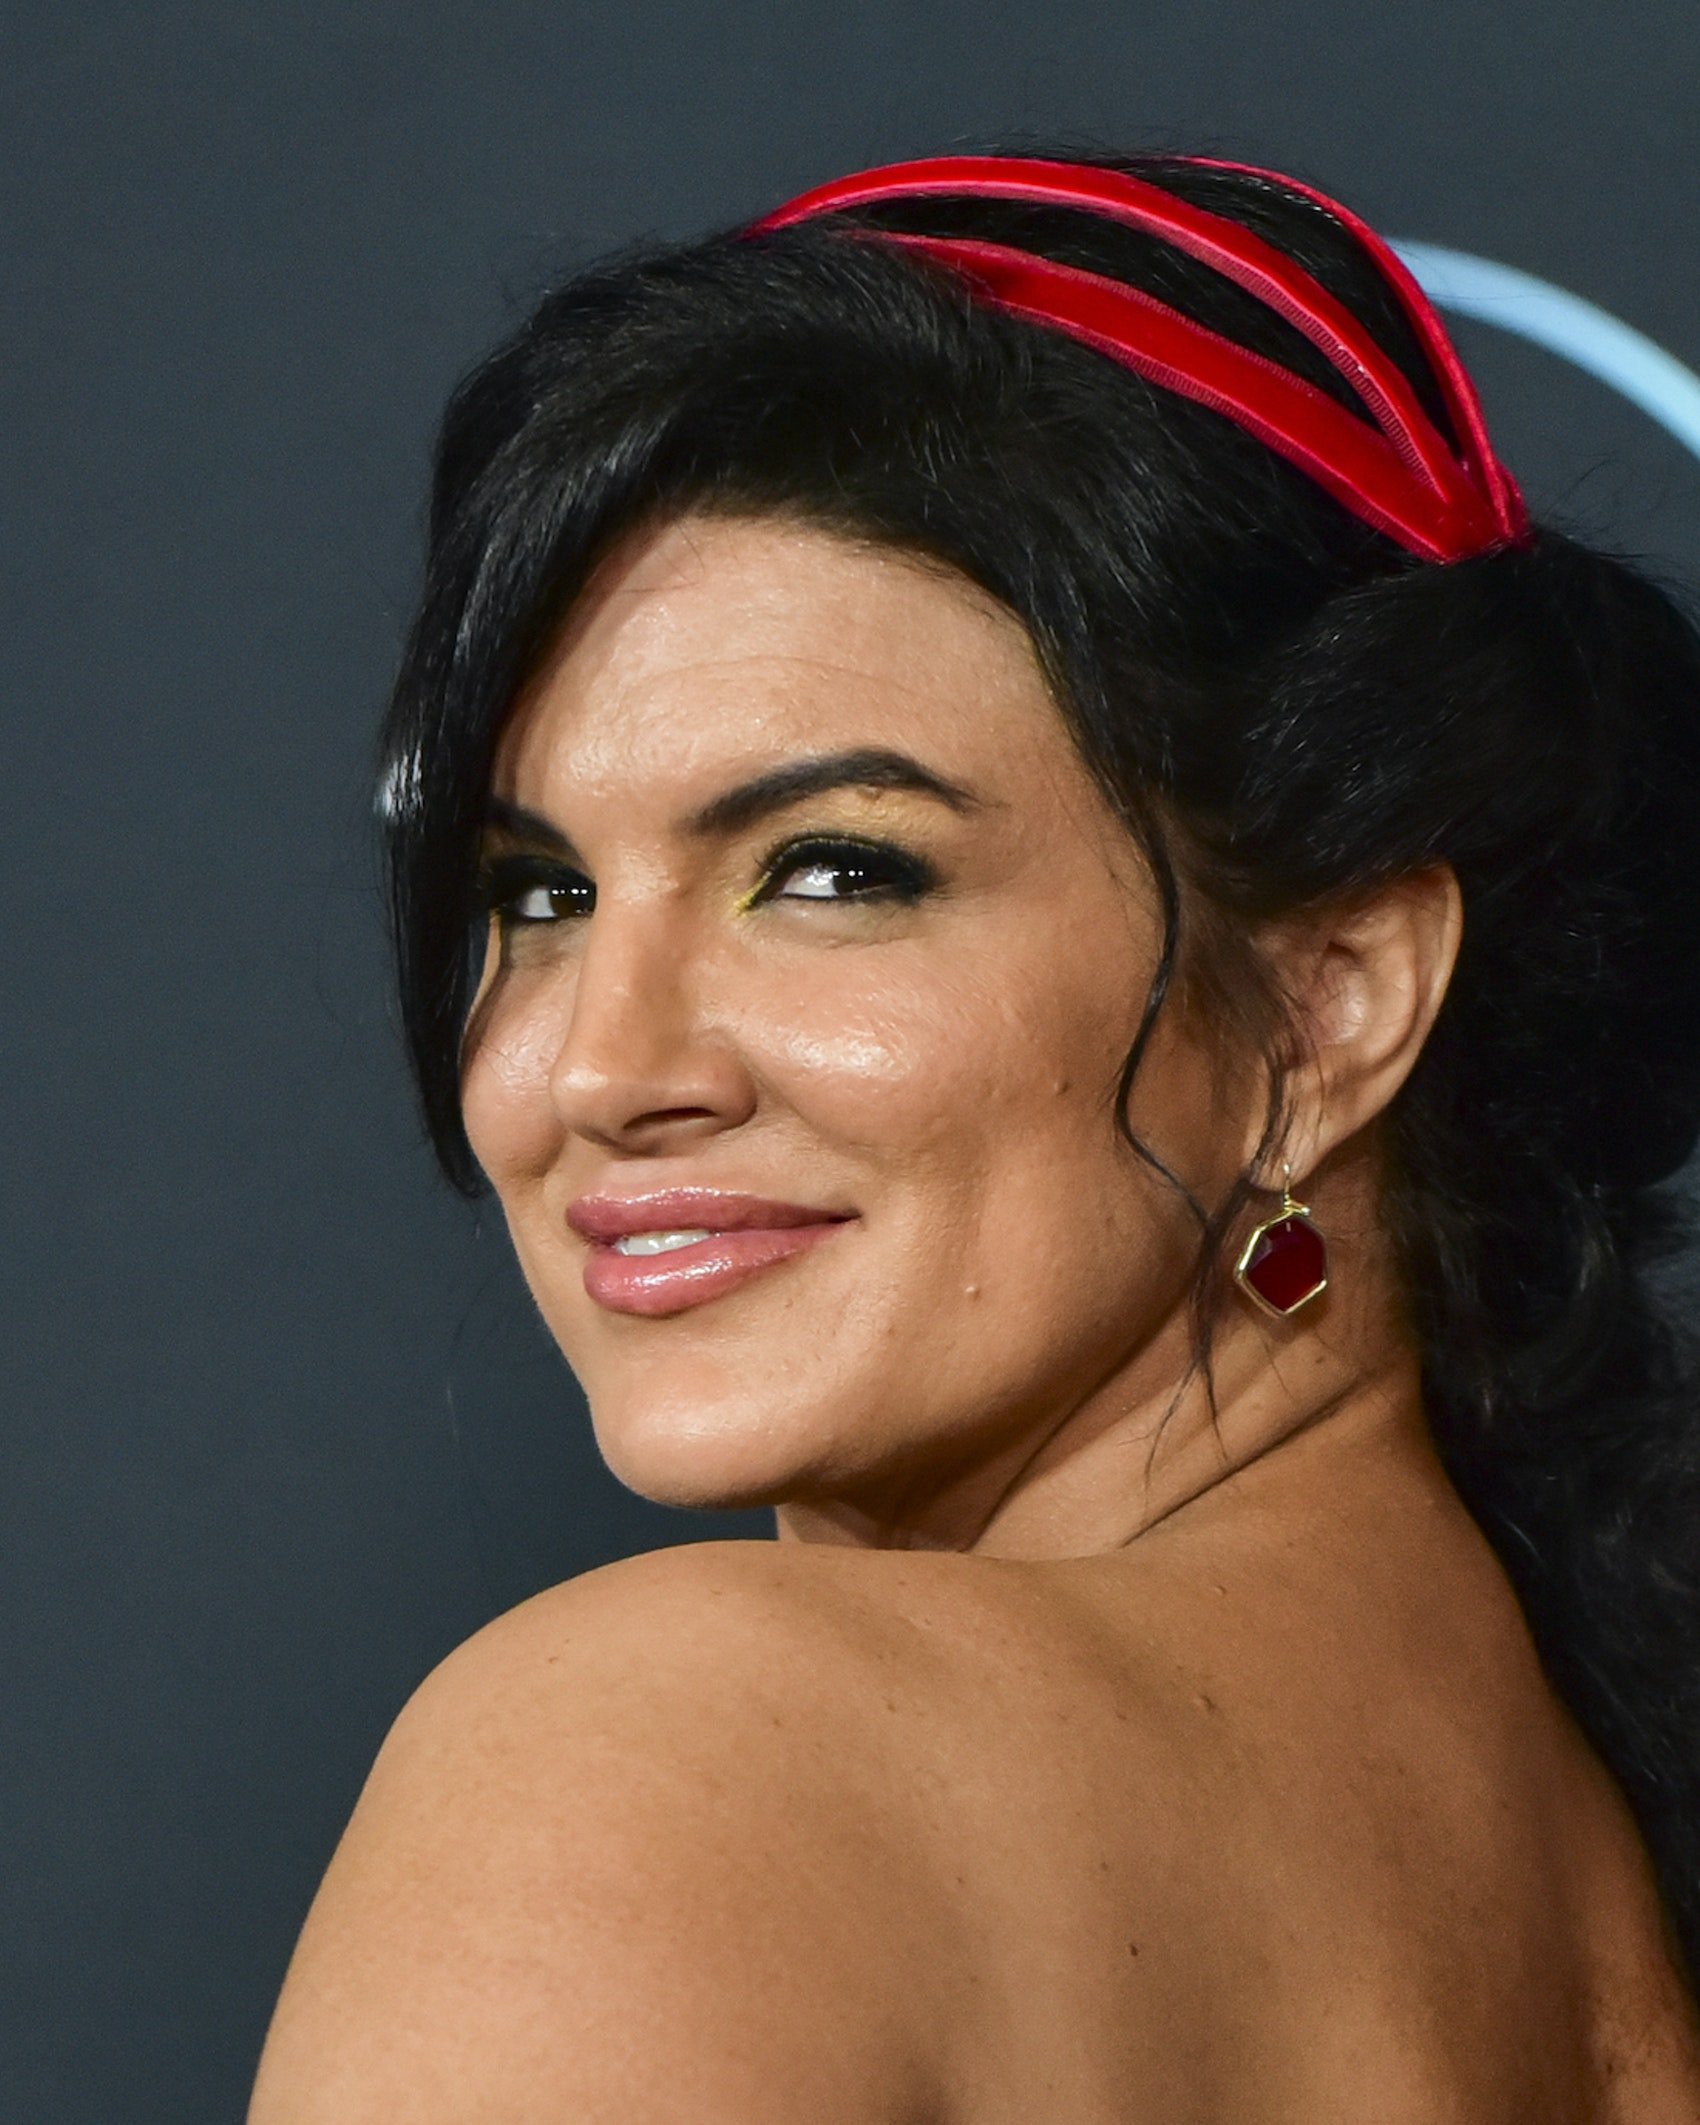 """Gina Carano attends the premiere of Disney+'s """"The Mandalorian"""" at El Capitan Theatre on November 13, 2019 in Los Angeles, California. (Photo by Rodin Eckenroth/FilmMagic)"""